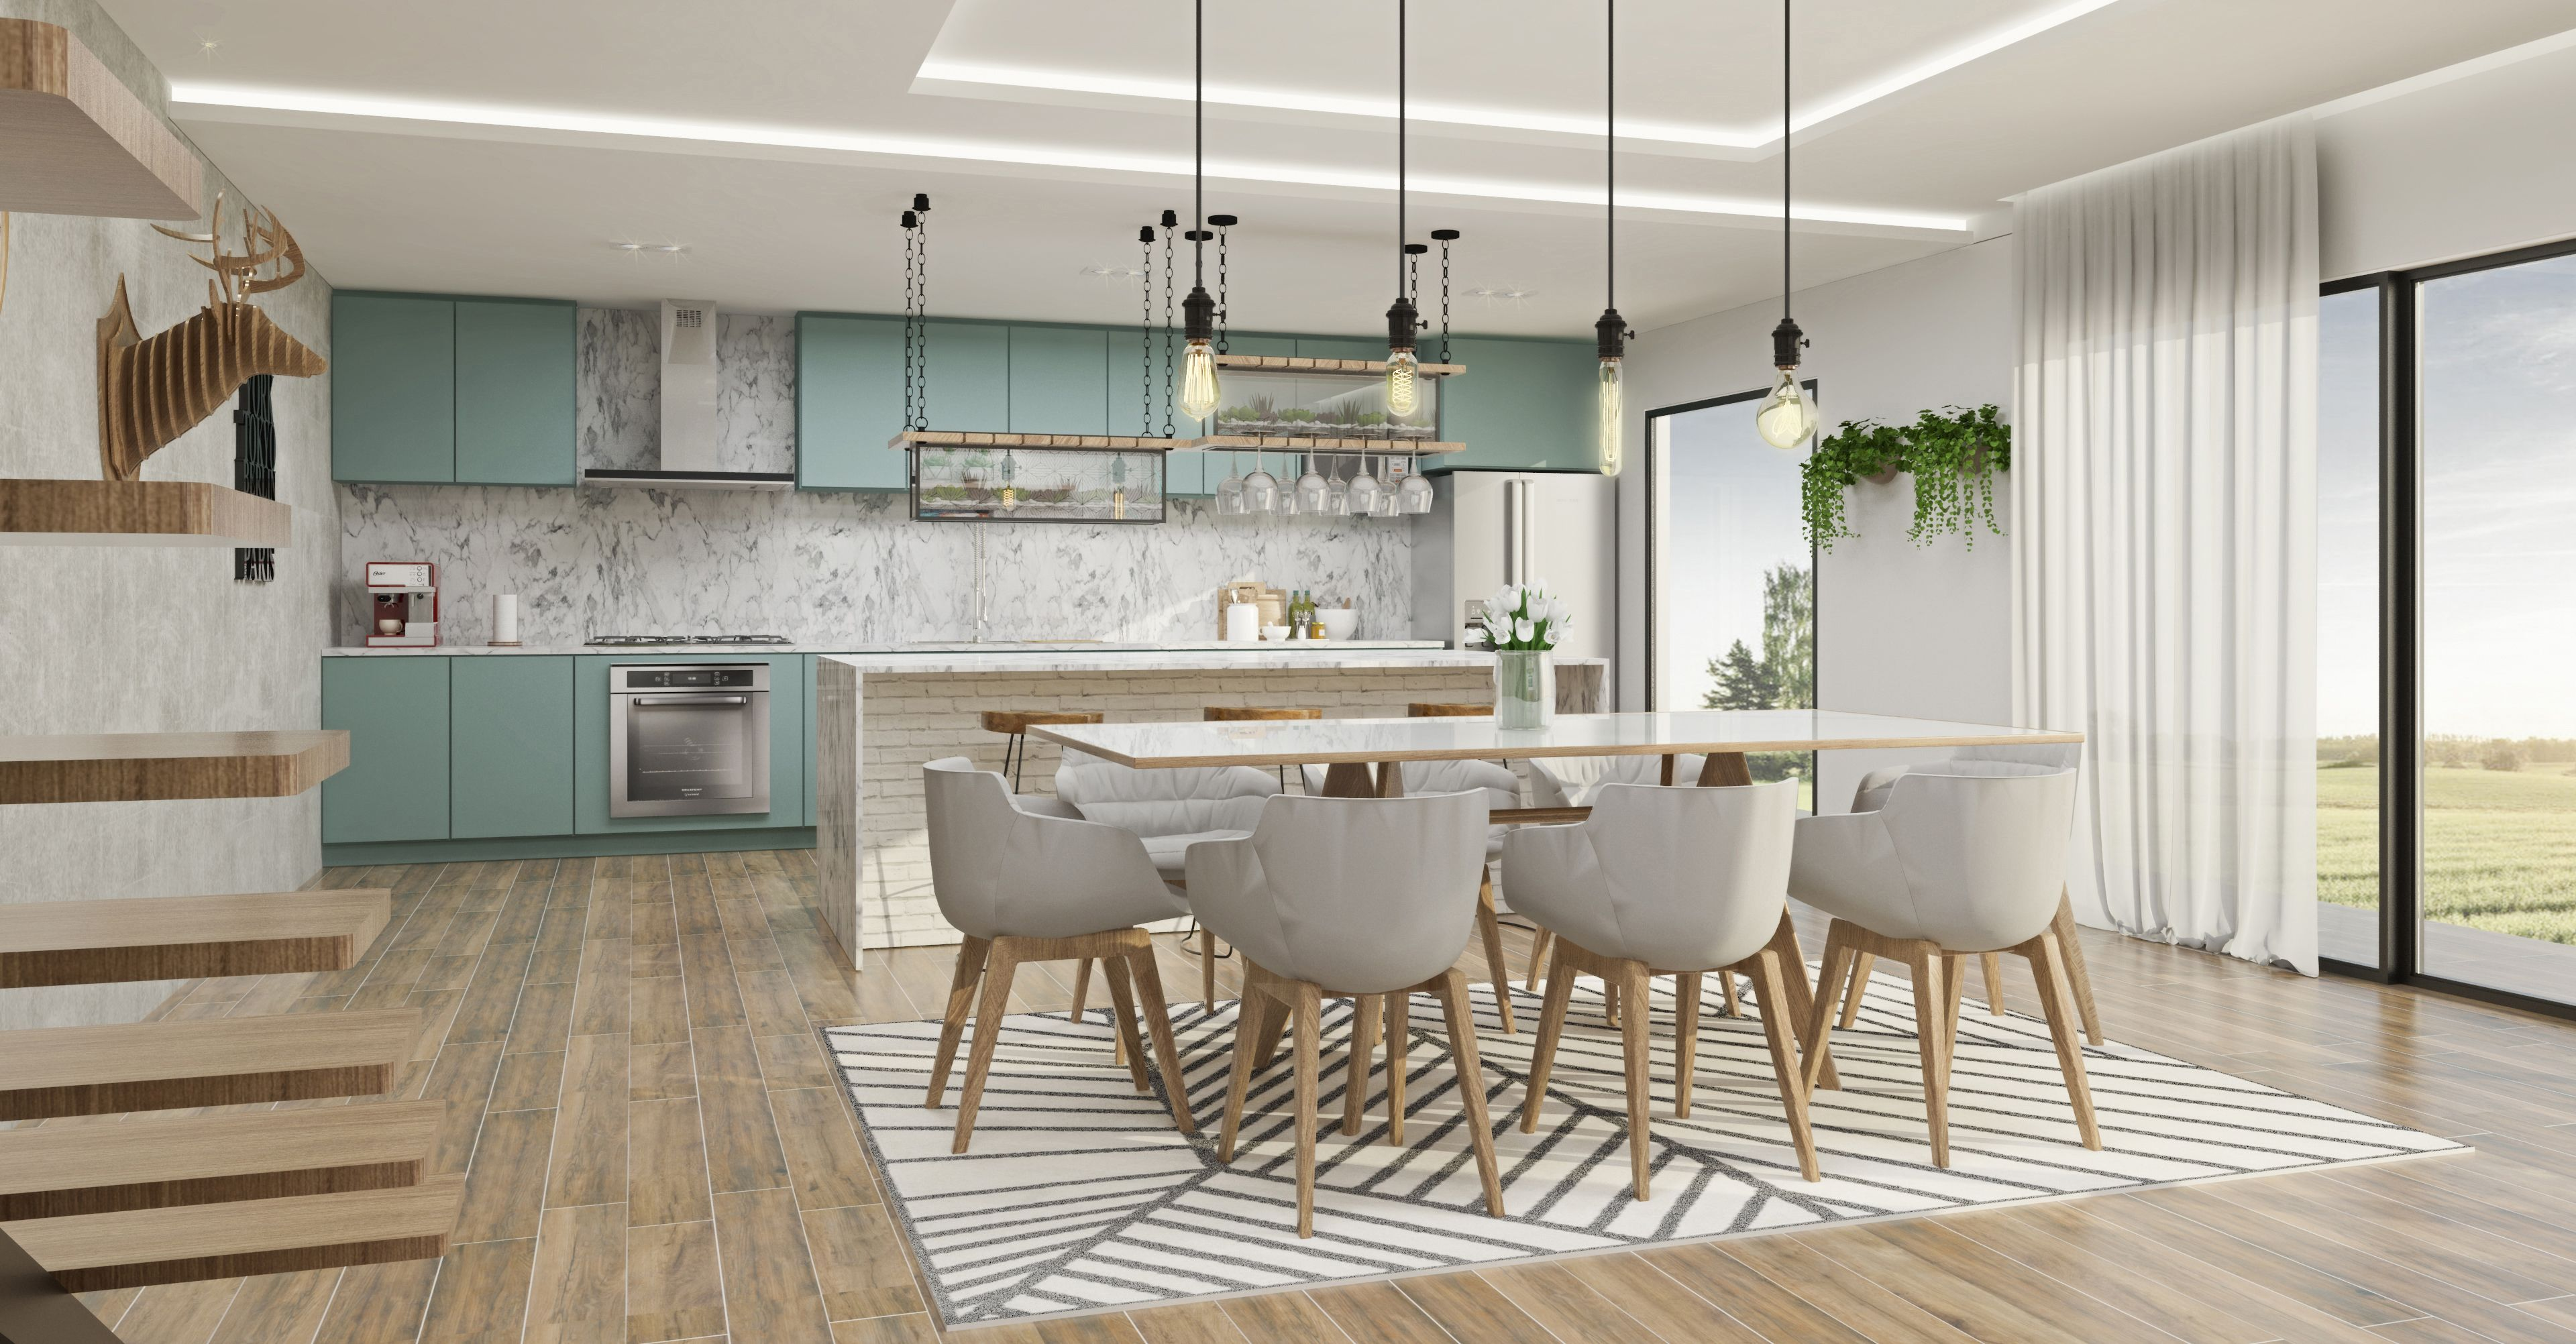 Produce Realistic And Detailled Interior Design Renders With